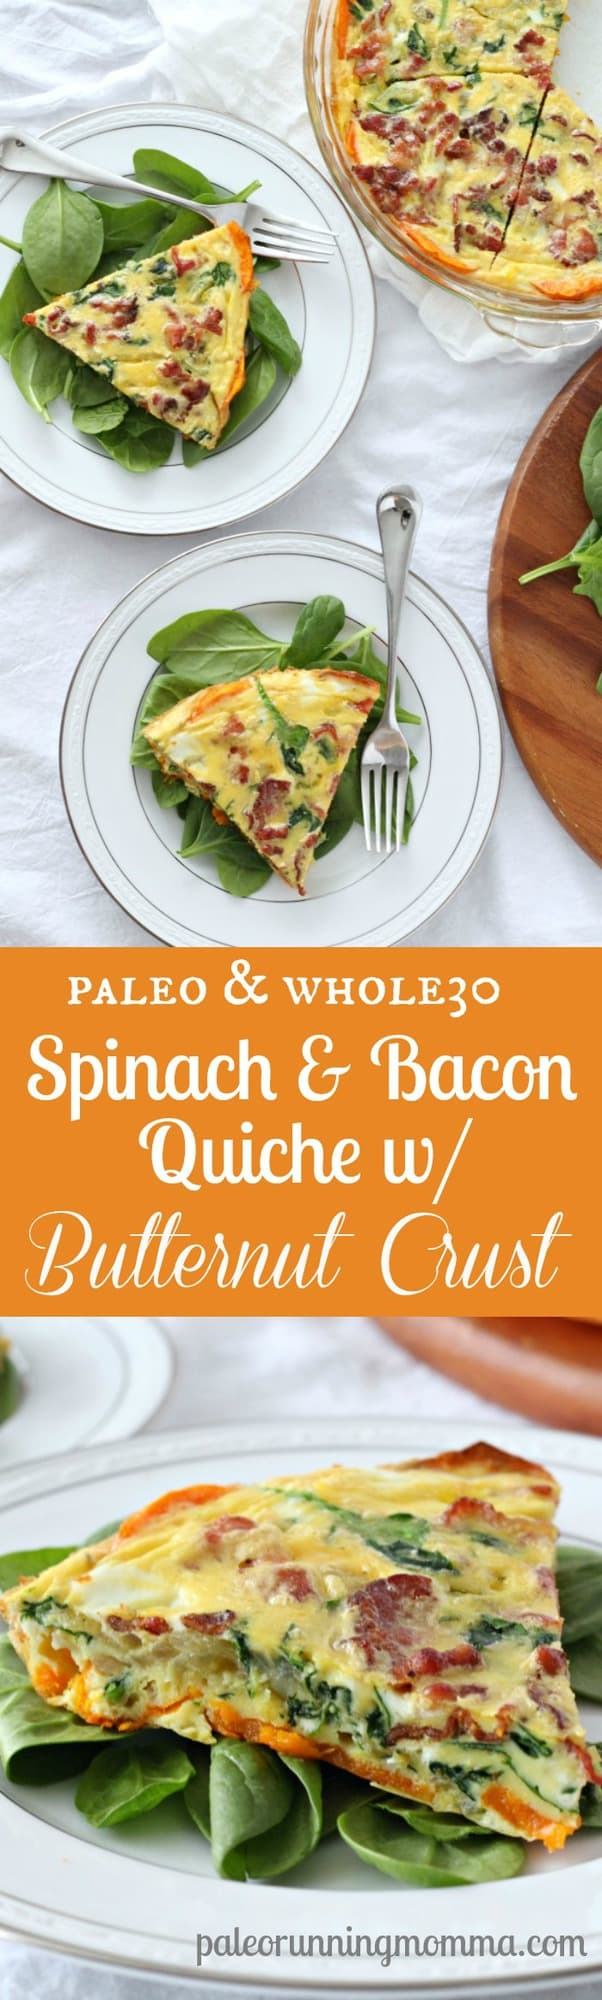 Spinach and Bacon Quiche with easy butternut squash crust - delicious and healthy #paleo and #whole30 breakfast, brunch, or make ahead meal!  #glutenfree, #dairyfree #grainfree